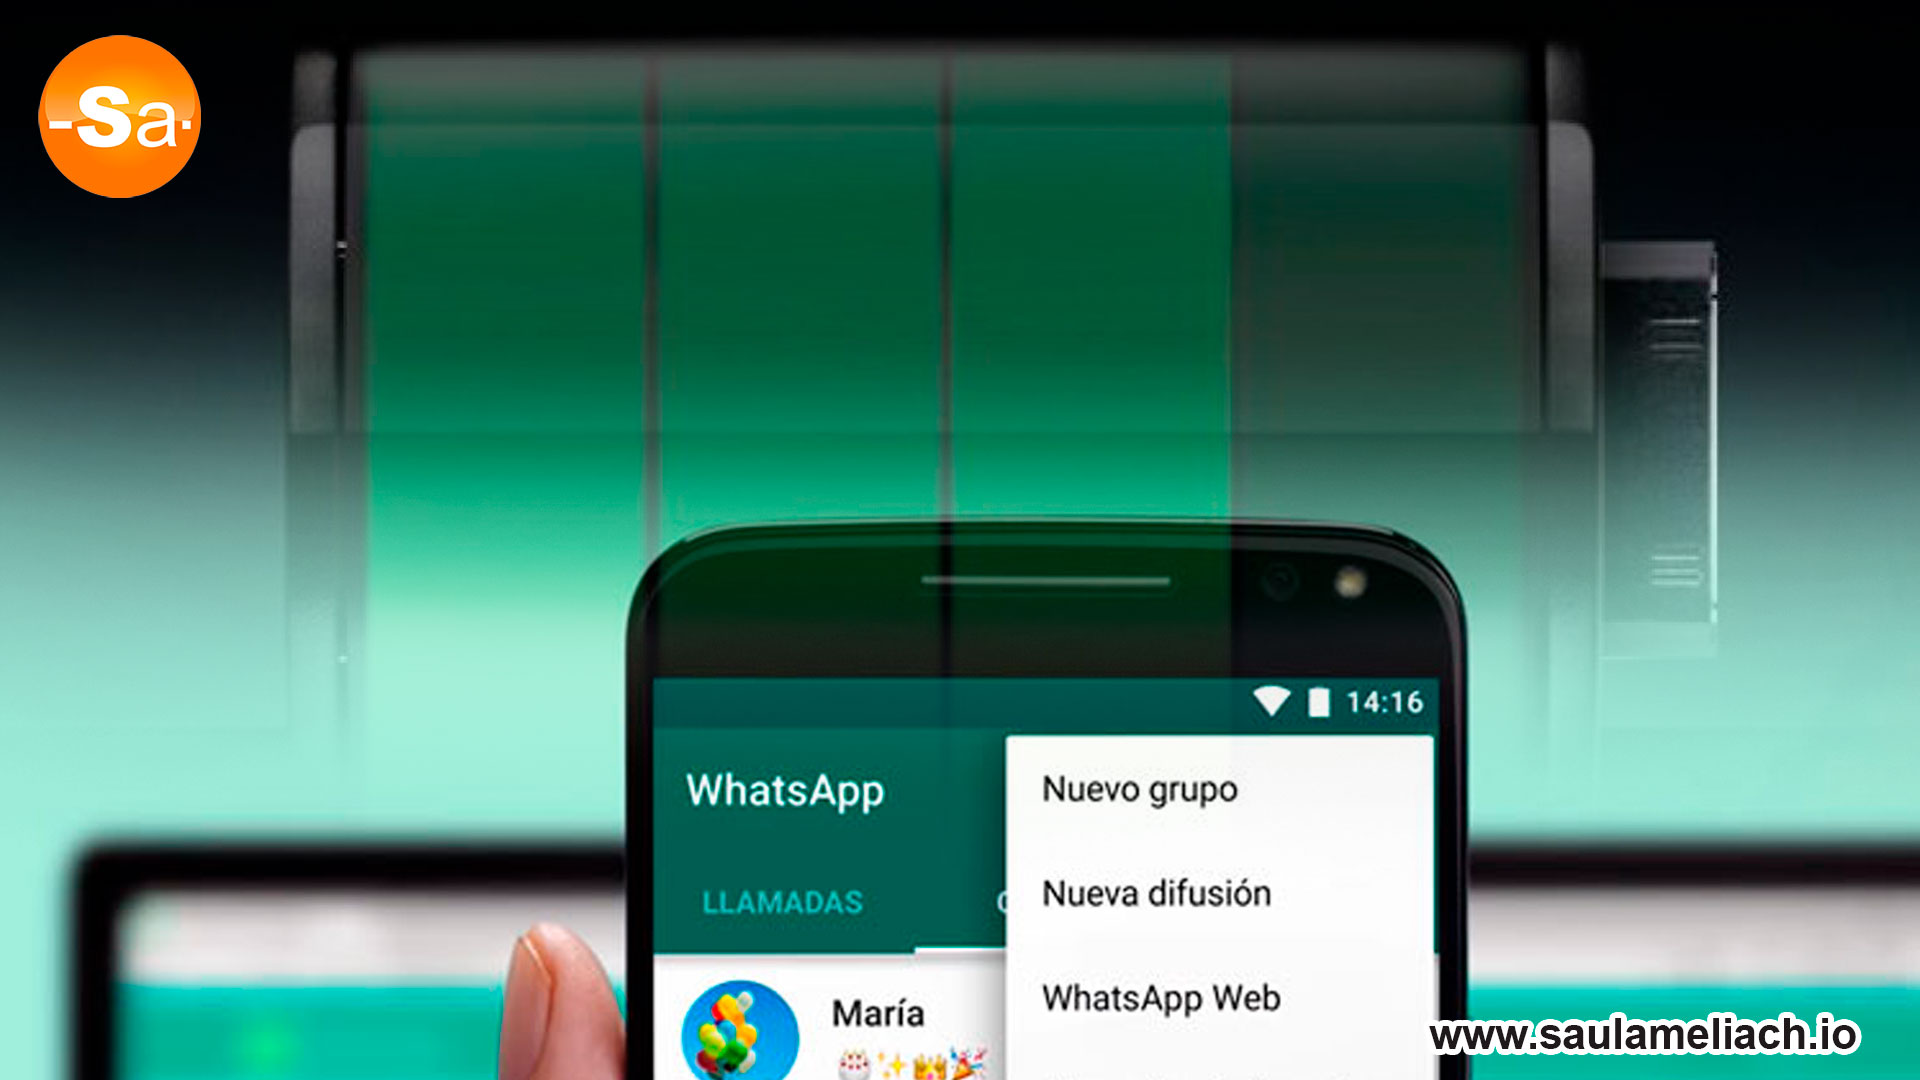 WhatsApp dark mode is already on its way with many advantages - Saulameliach.io